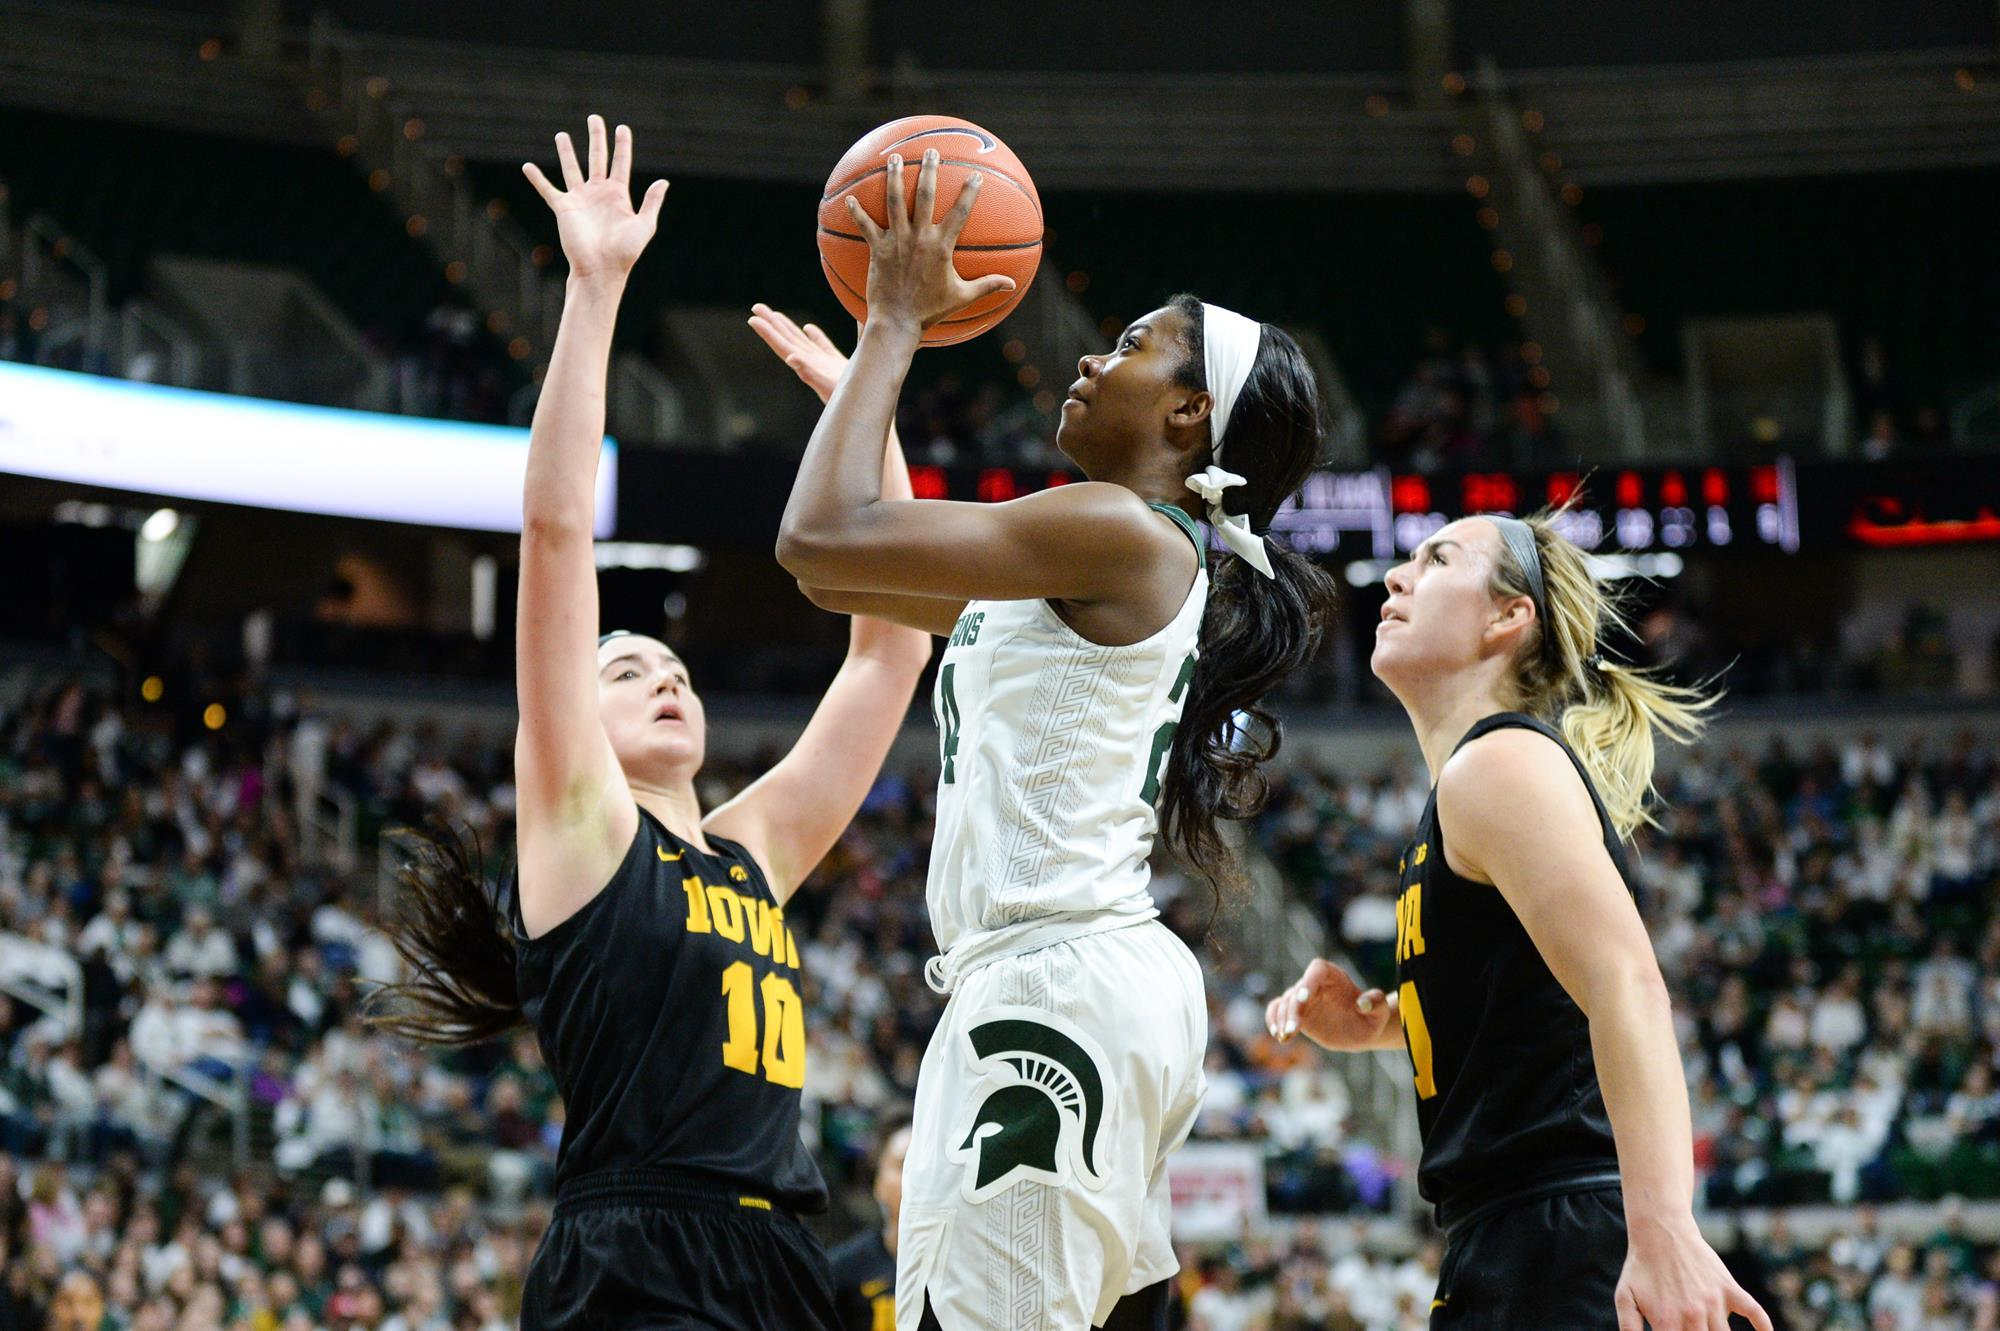 Clouden's late bucket propels Spartans past Purdue